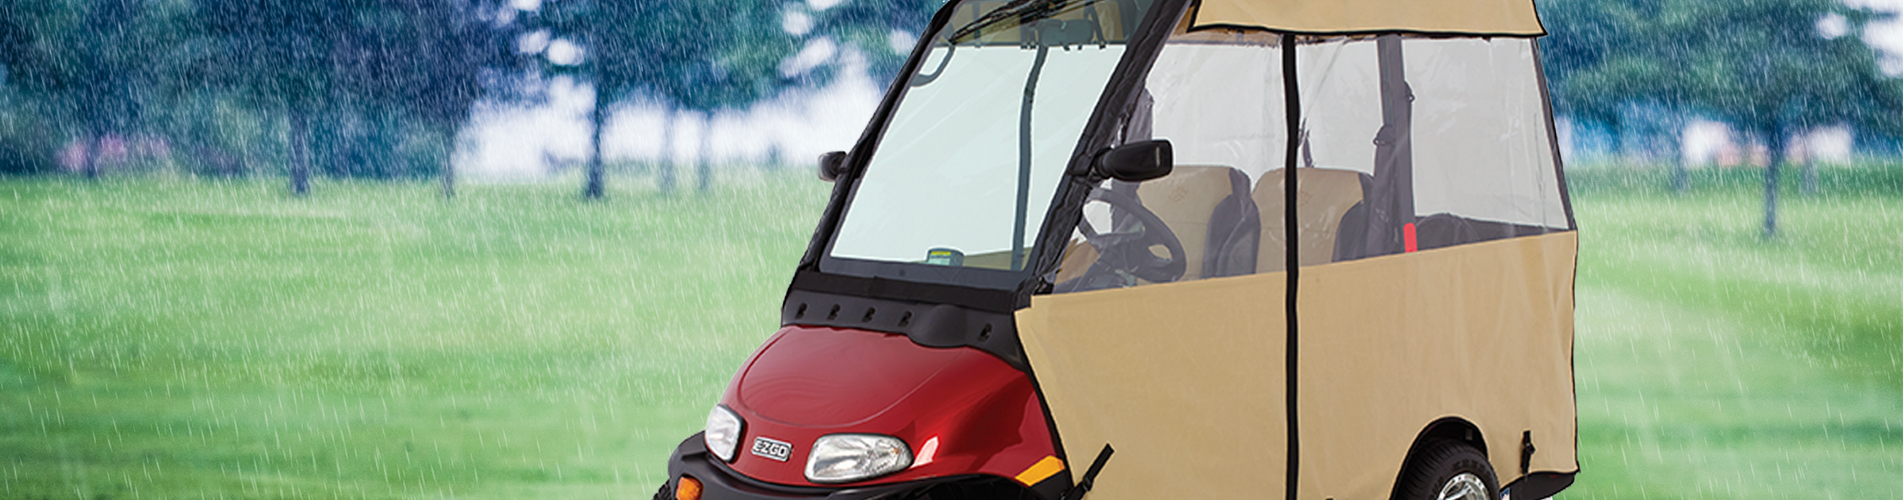 Shop EZGO Iowa Golf Cart Decals on power tool decals, bus decals, side by side decals, golf wall decals, golf graphics and decals, car decals, go kart decals, commercial decals, camper decals, chrysler decals, crane decals, heavy equipment decals, beach chair wall decals, chevy valve cover decals, ezgo decals, wheel decals, zero turn mower decals, 3 wheeler decals, golfer decals, gm goodwrench decals,